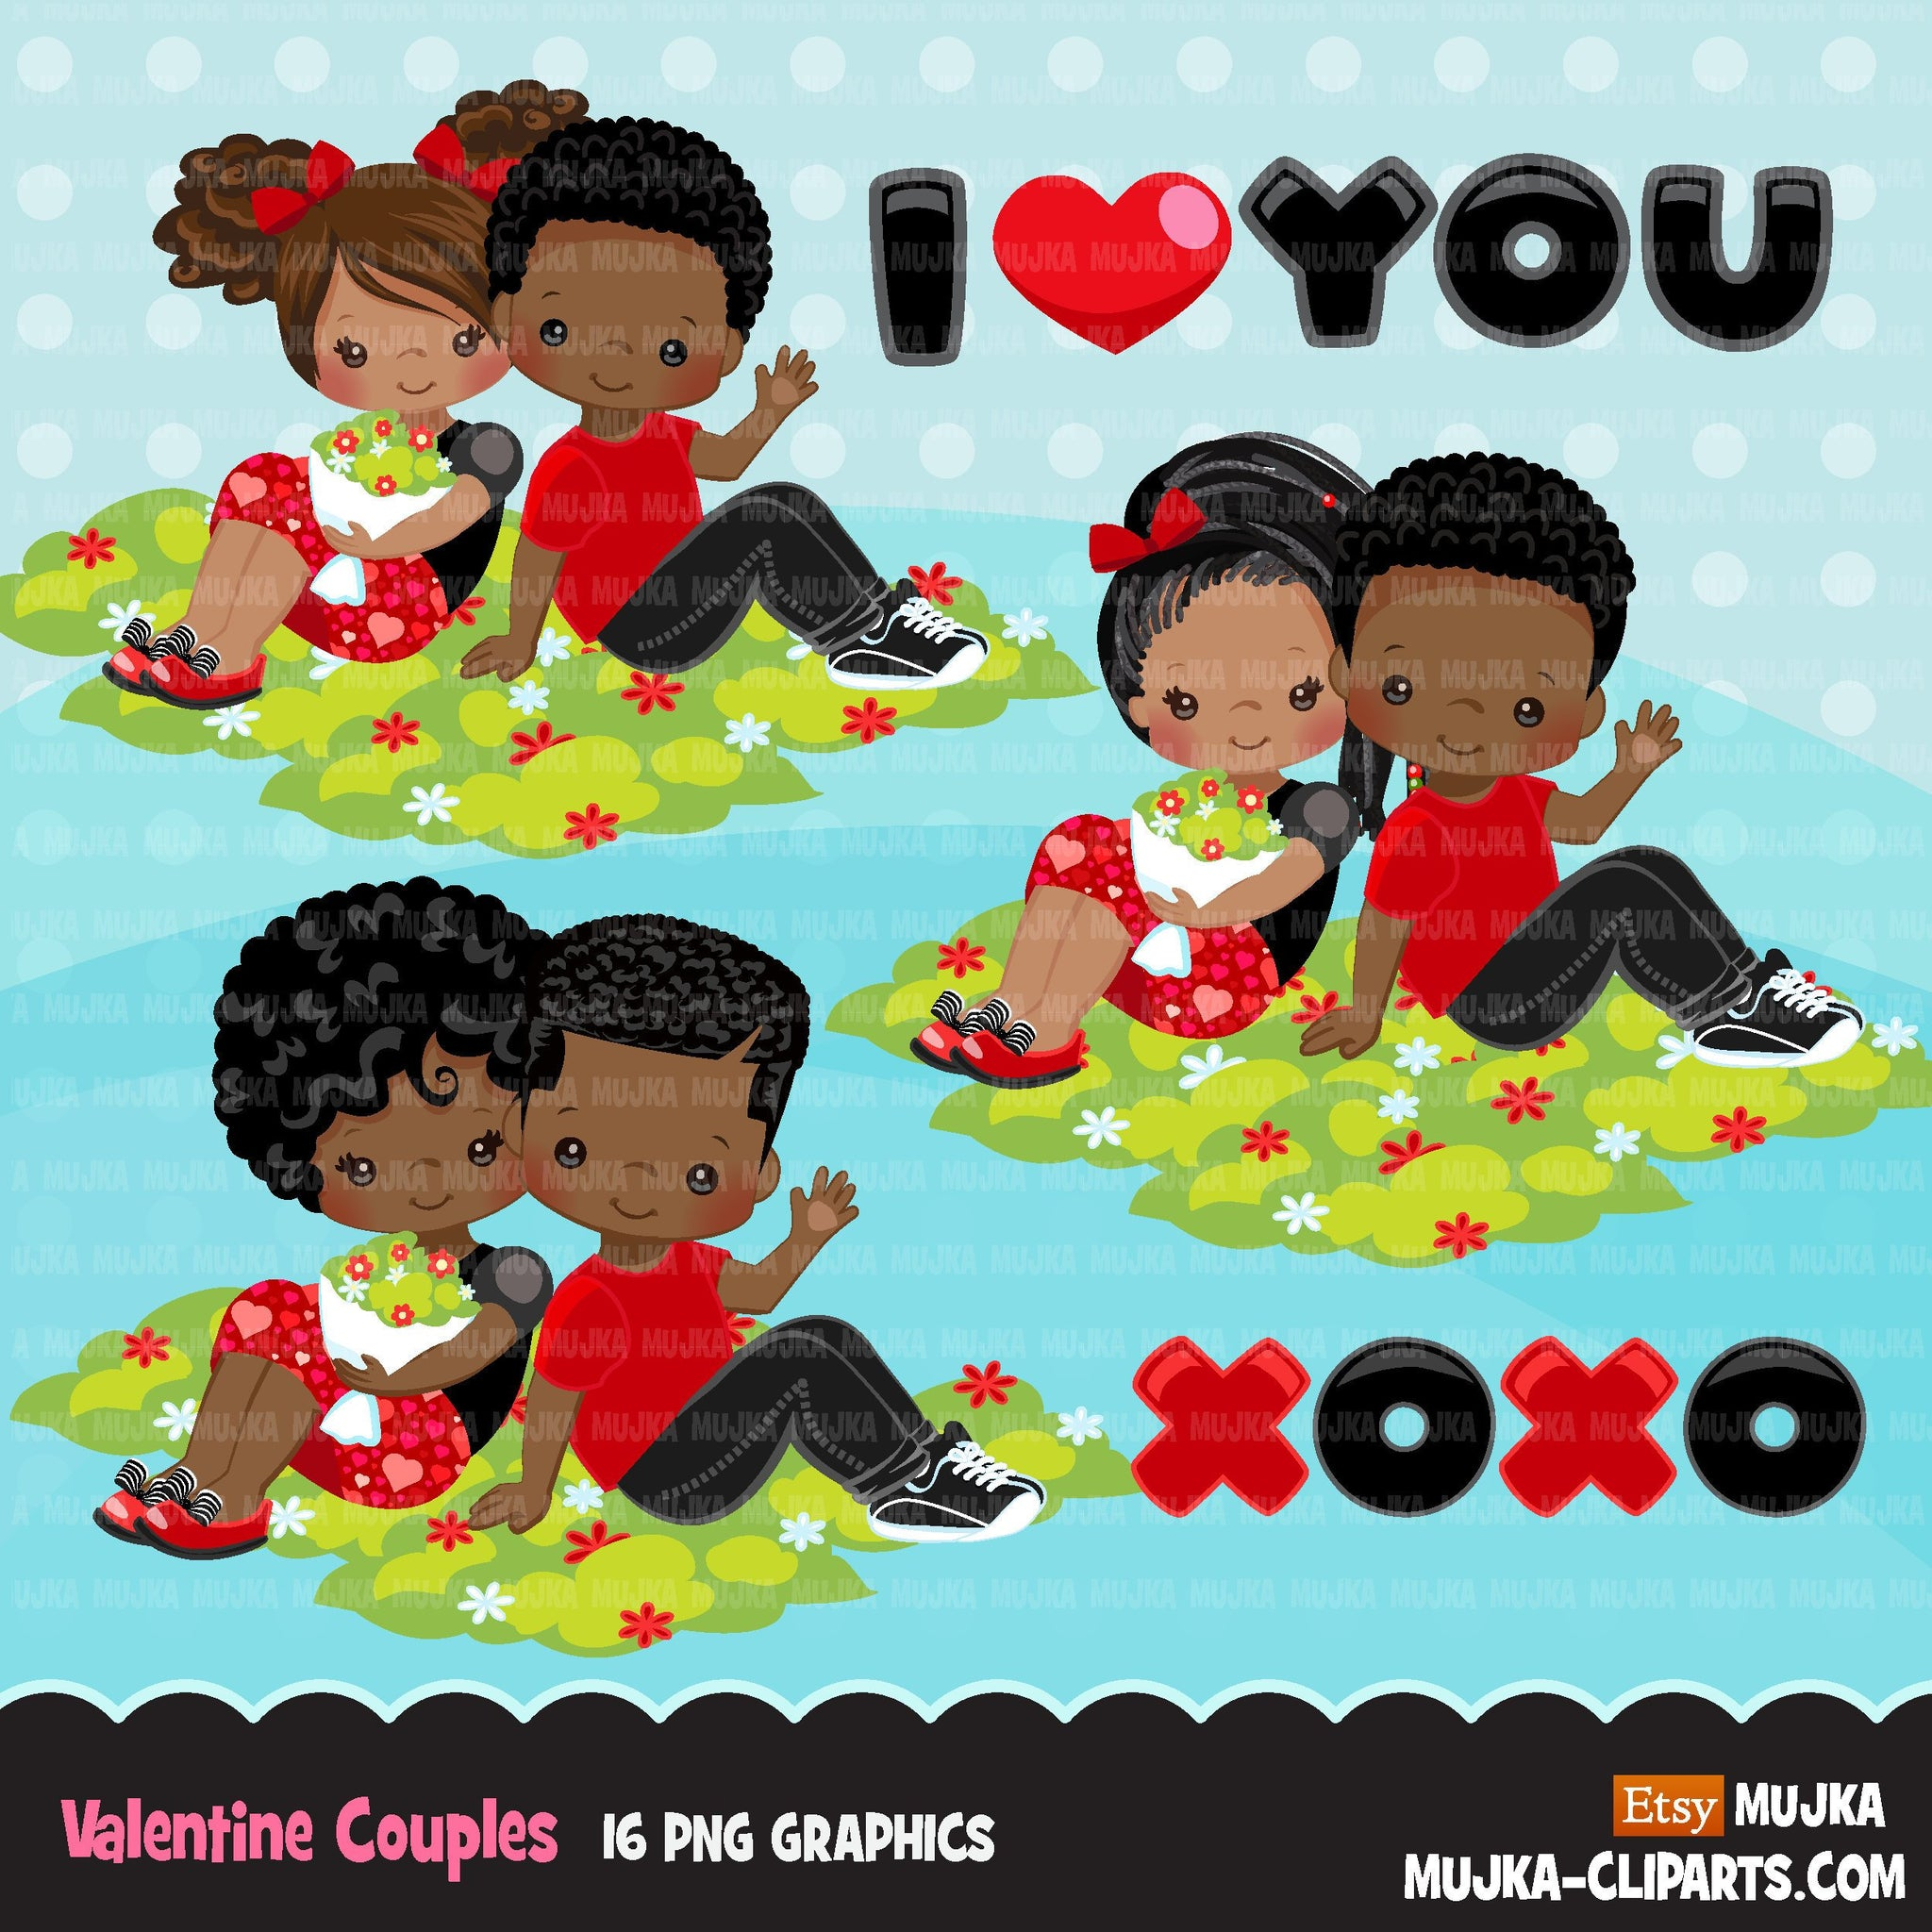 Valentine's Day Clipart, Cute Valentine black kids, couples sitting, XOXO valentine graphics, commercial use clip art